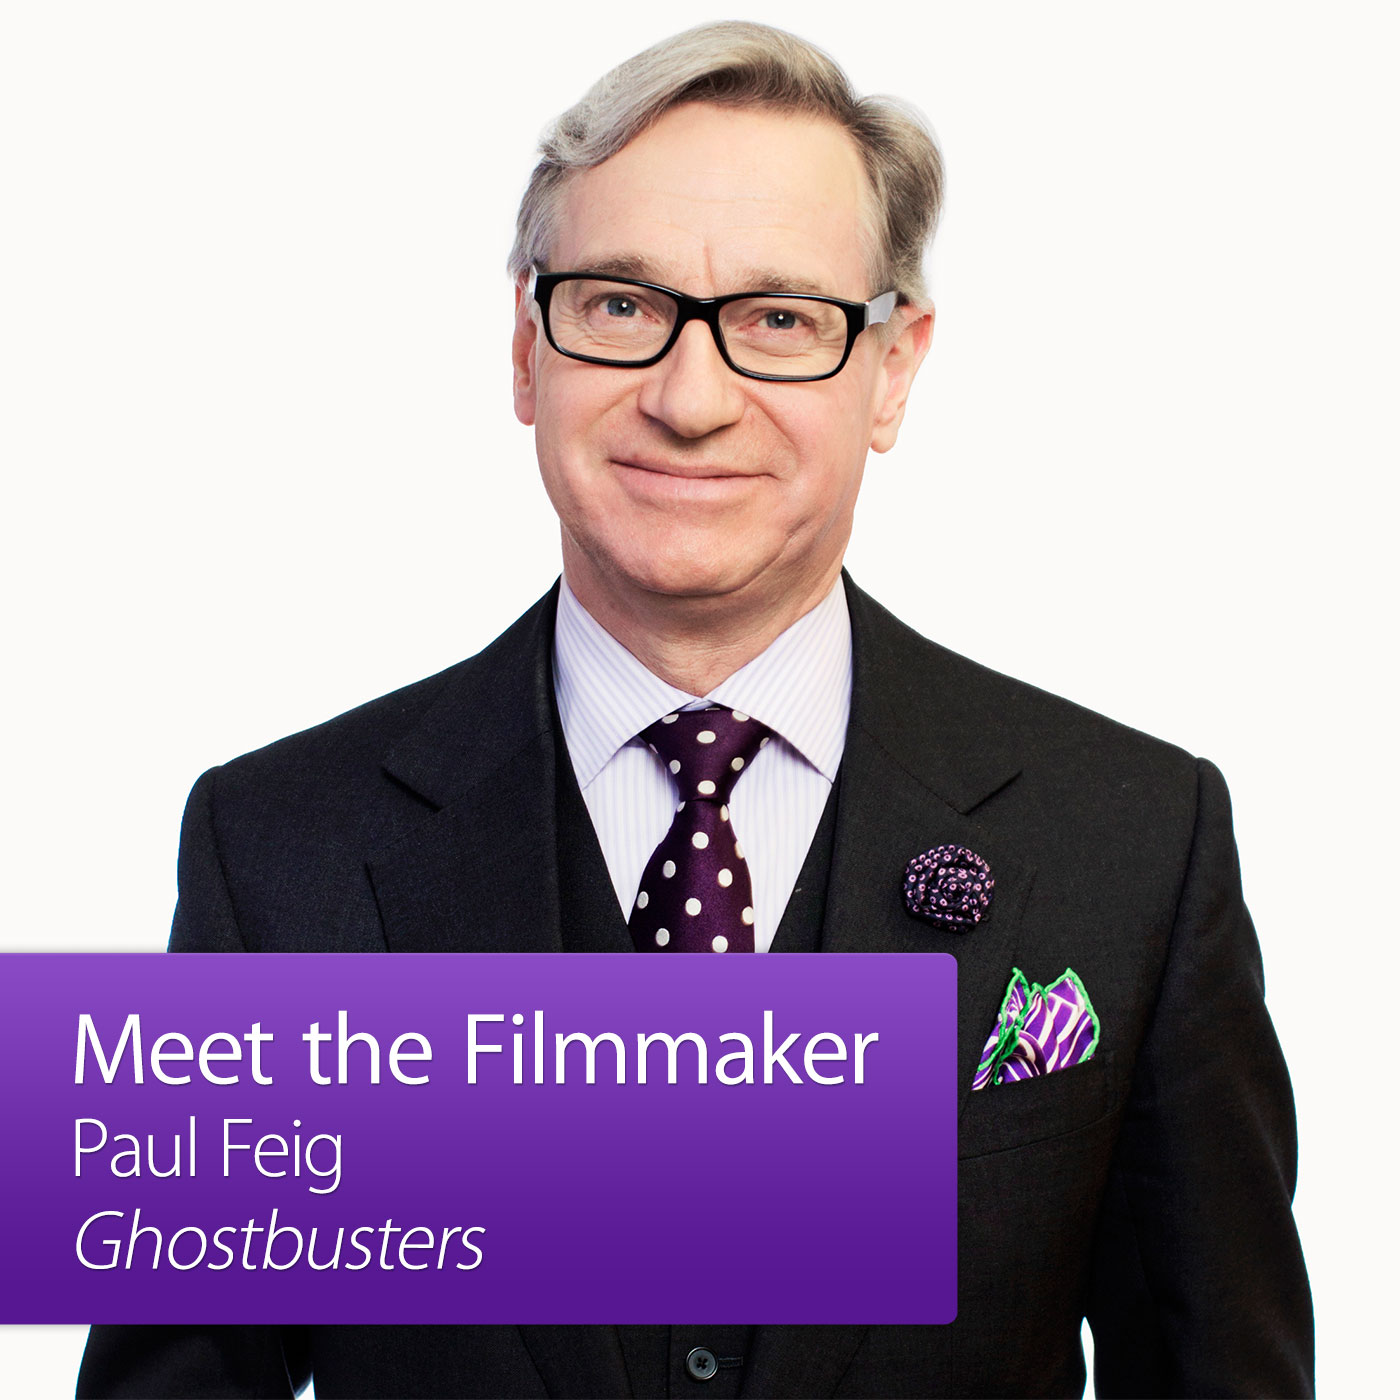 Ghostbusters: Meet the Filmmaker